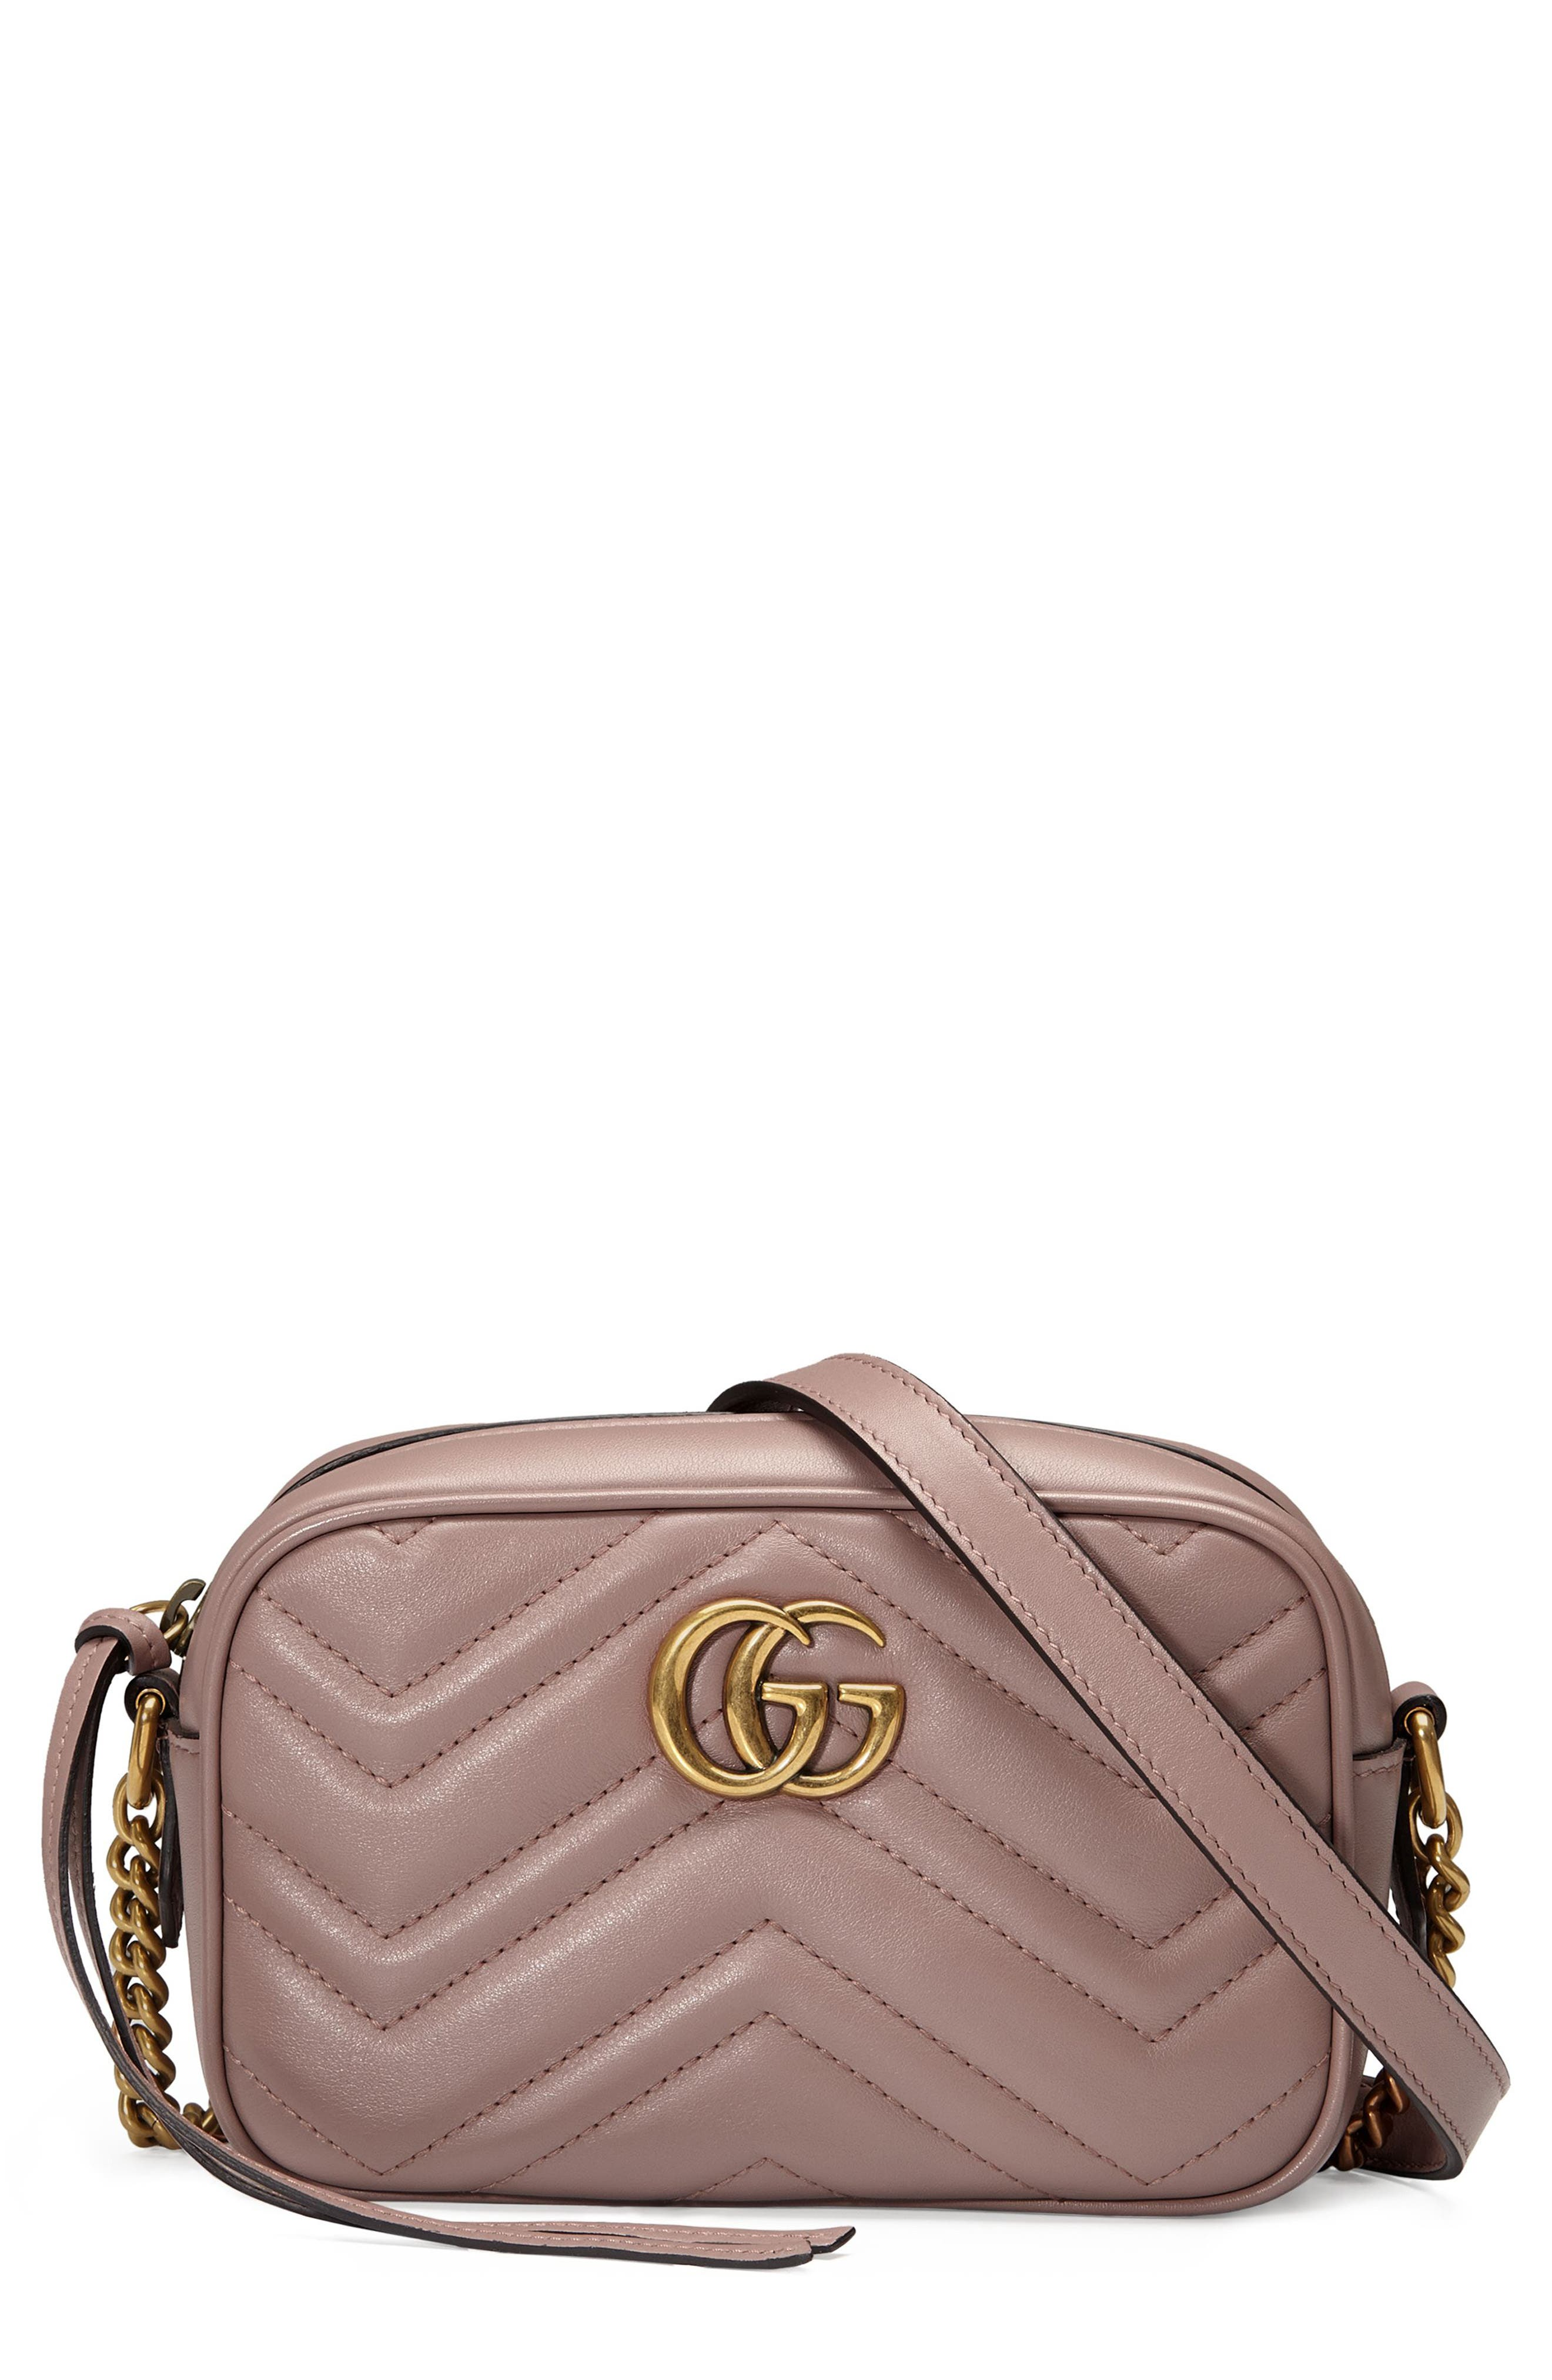 Alternate Image 1 Selected - Gucci GG Marmont 2.0 Matelassé Leather Shoulder Bag